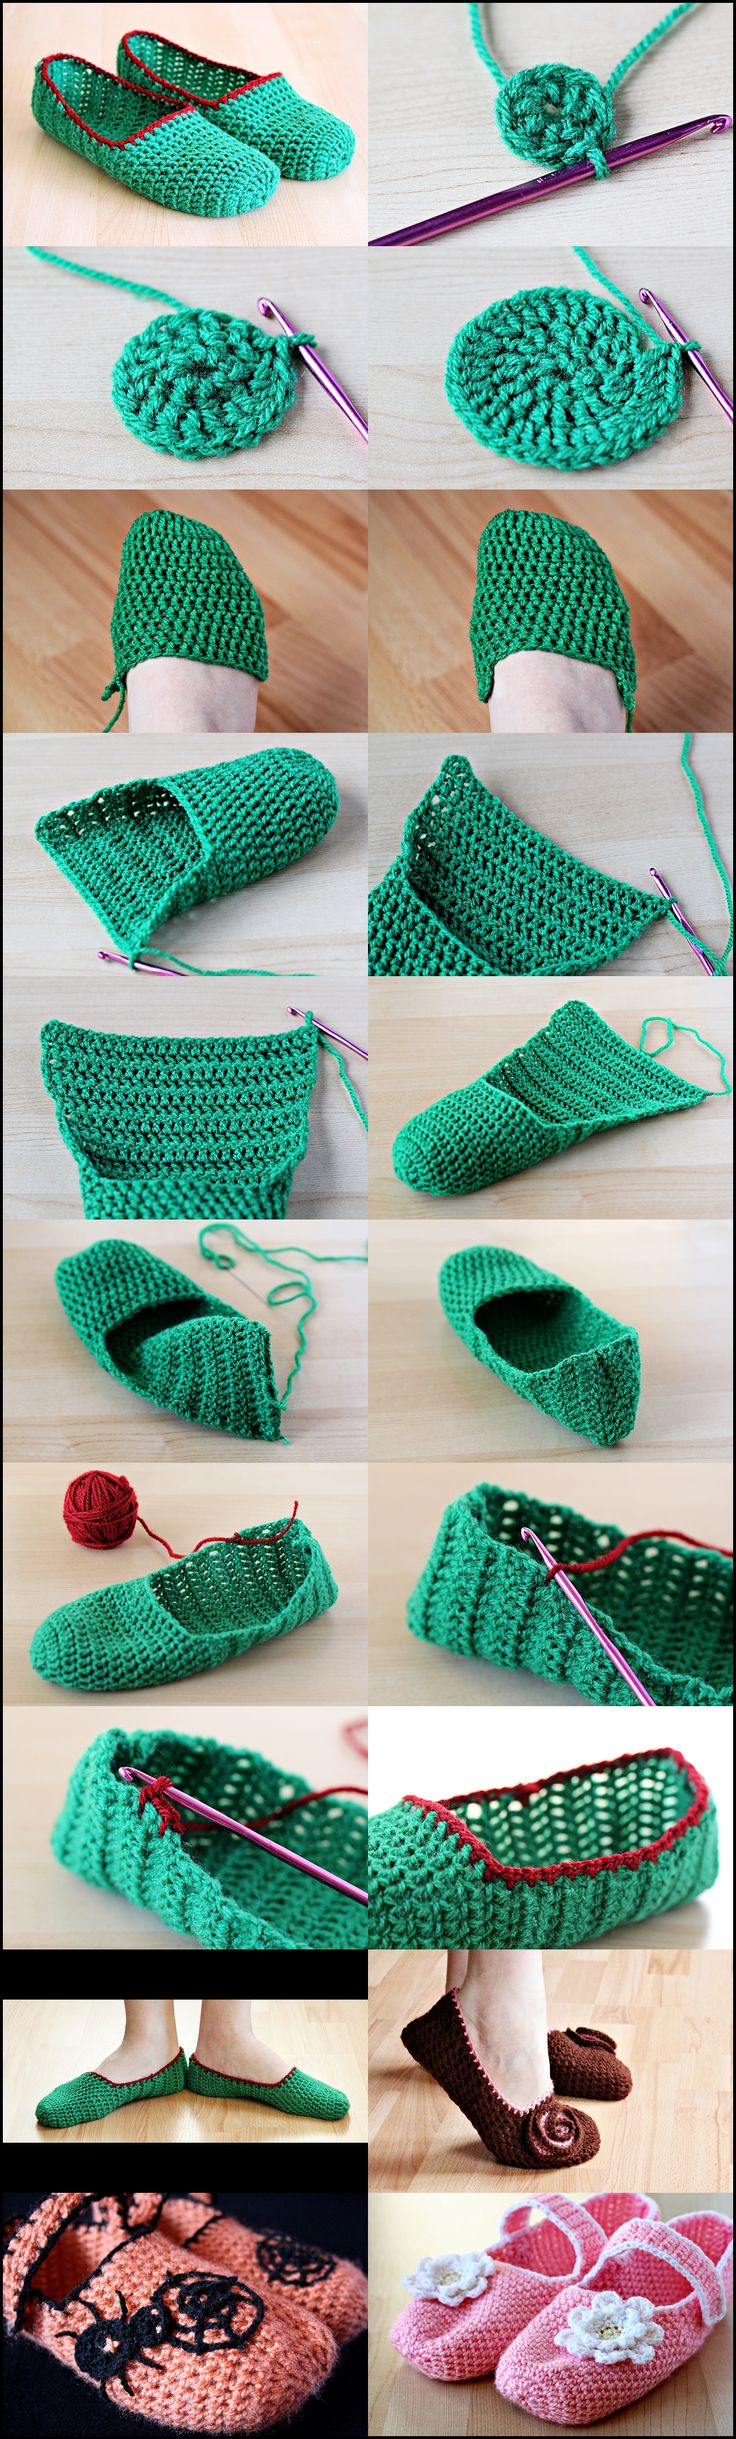 Crochet Slippers click here... http://zoomyummy.com/2011/01/21/how-to-make-simple-crochet-slippers/